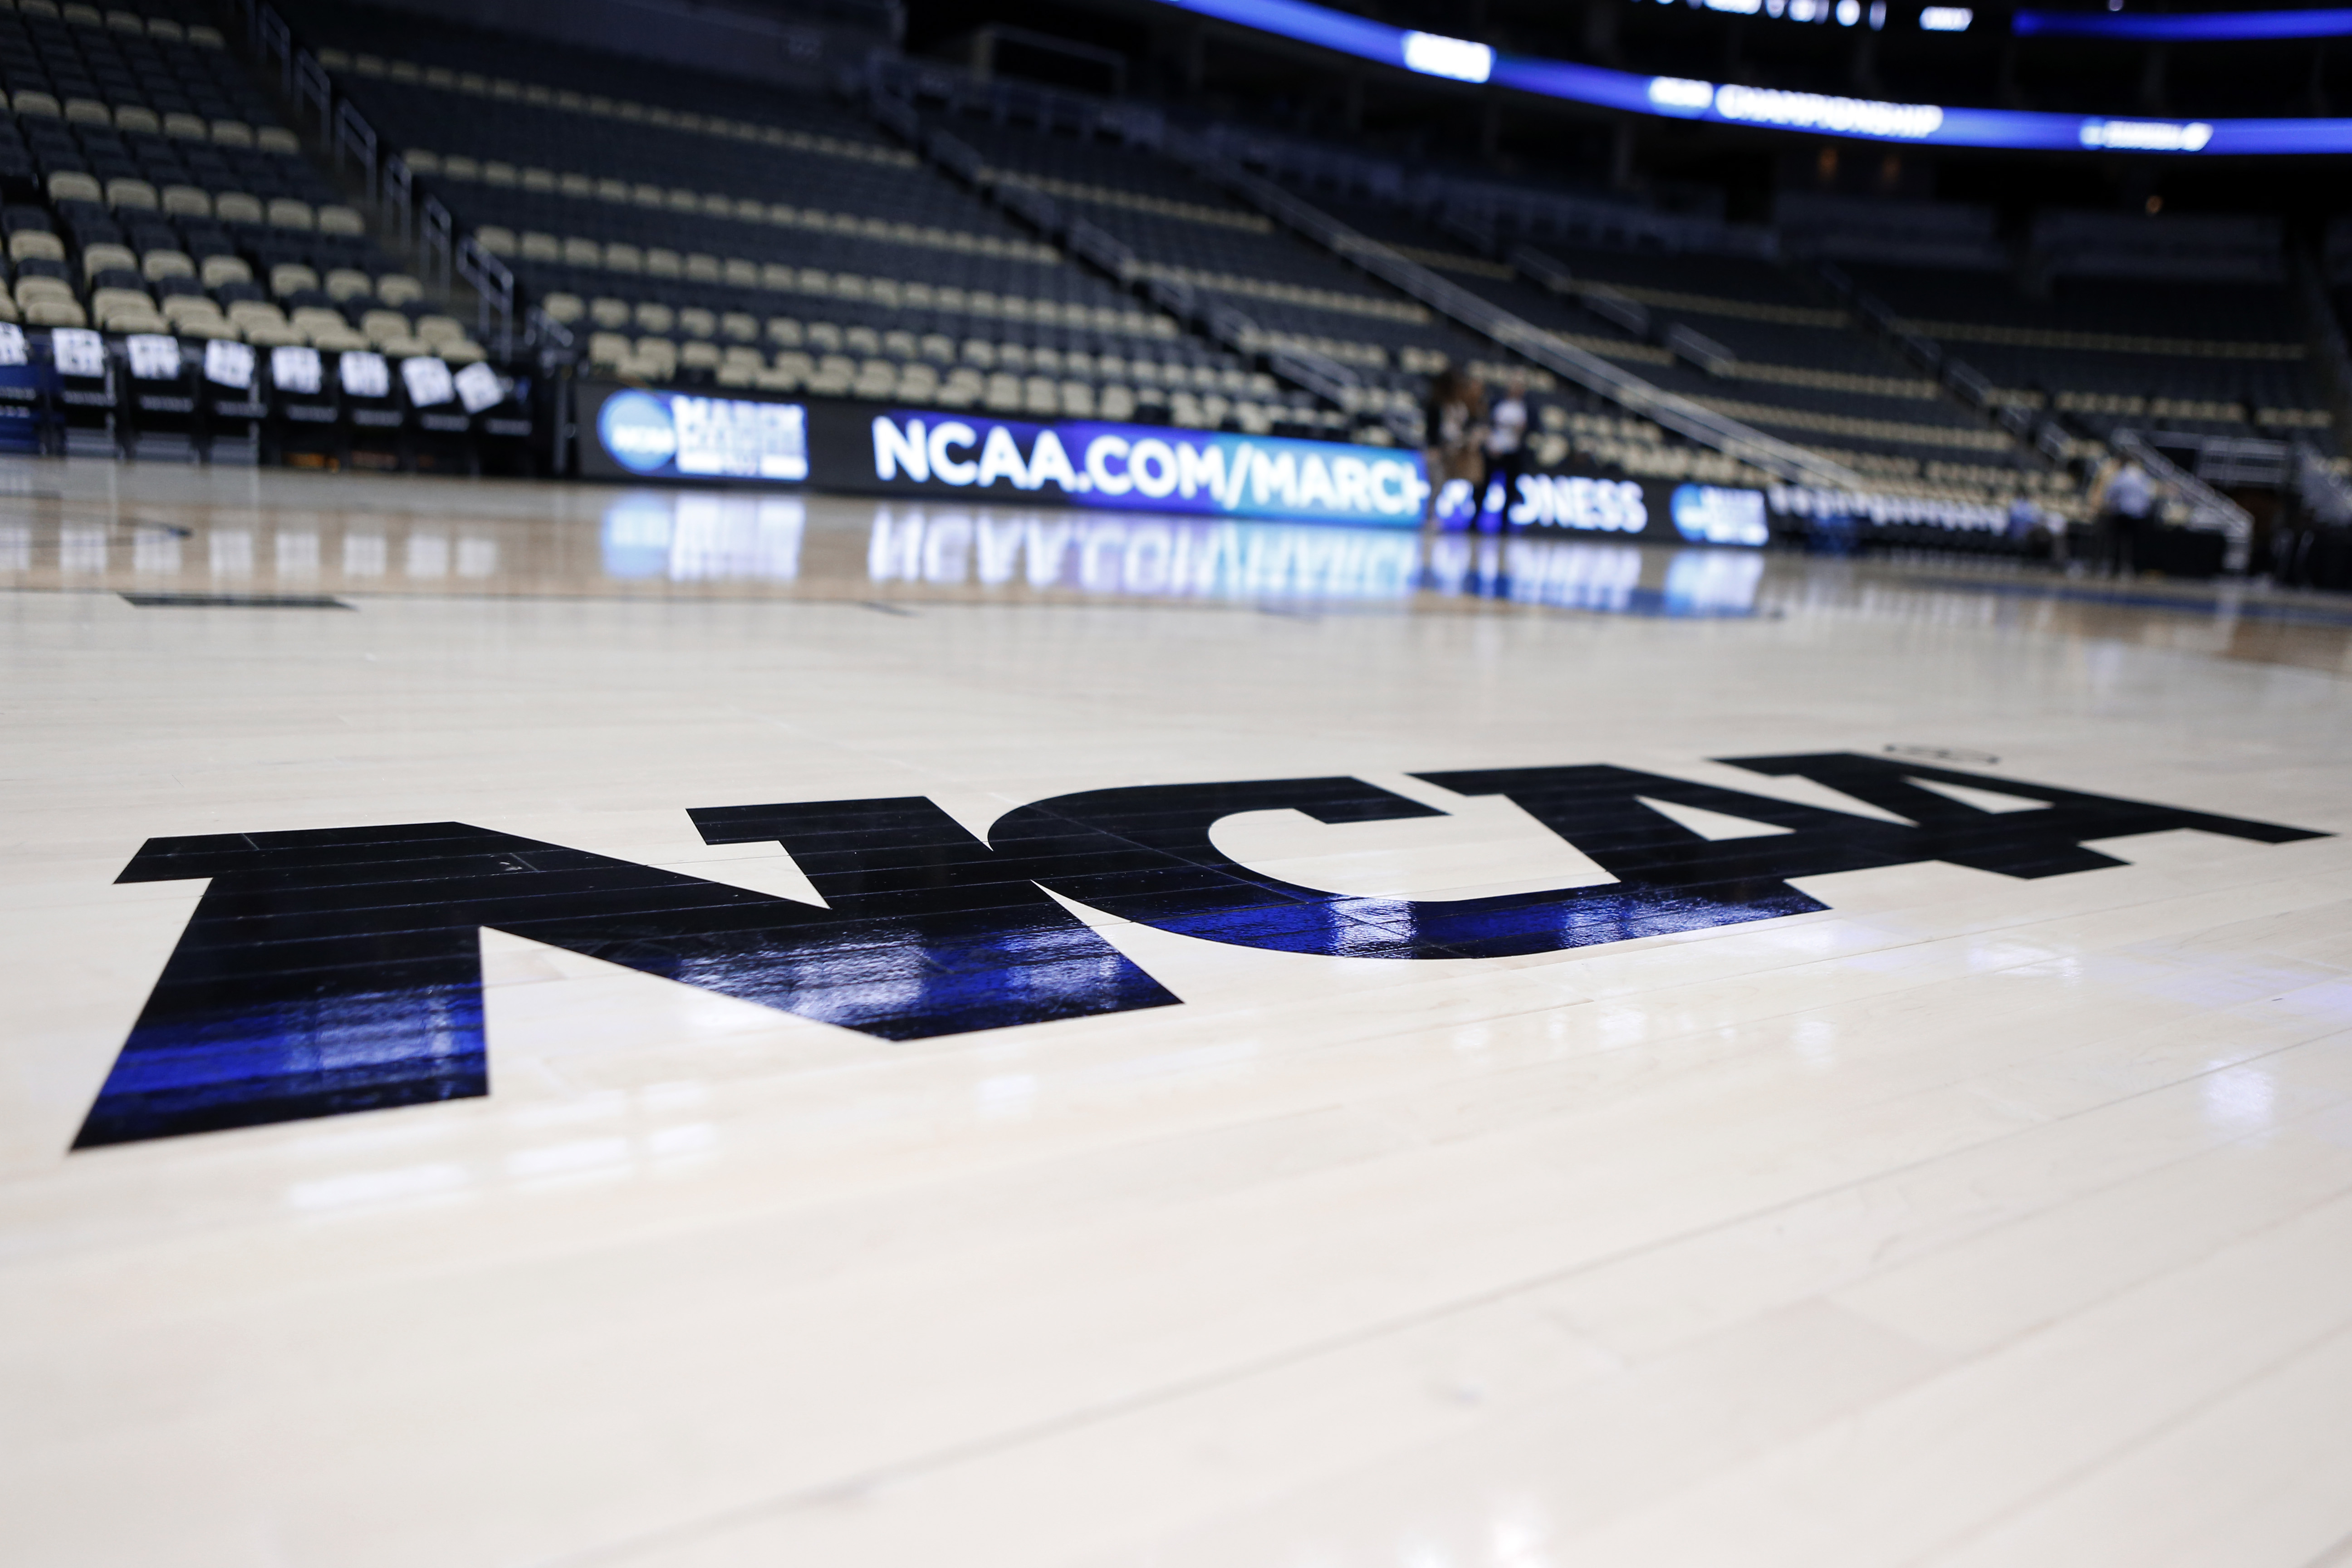 The NCAA logo is on the court as work continues at The Consol Energy Center in Pittsburgh, Wednesday, March 18, 2015, for the NCAA college basketball second and third round game. Second round games start on Thursday. (AP Photo/Keith Srakocic)